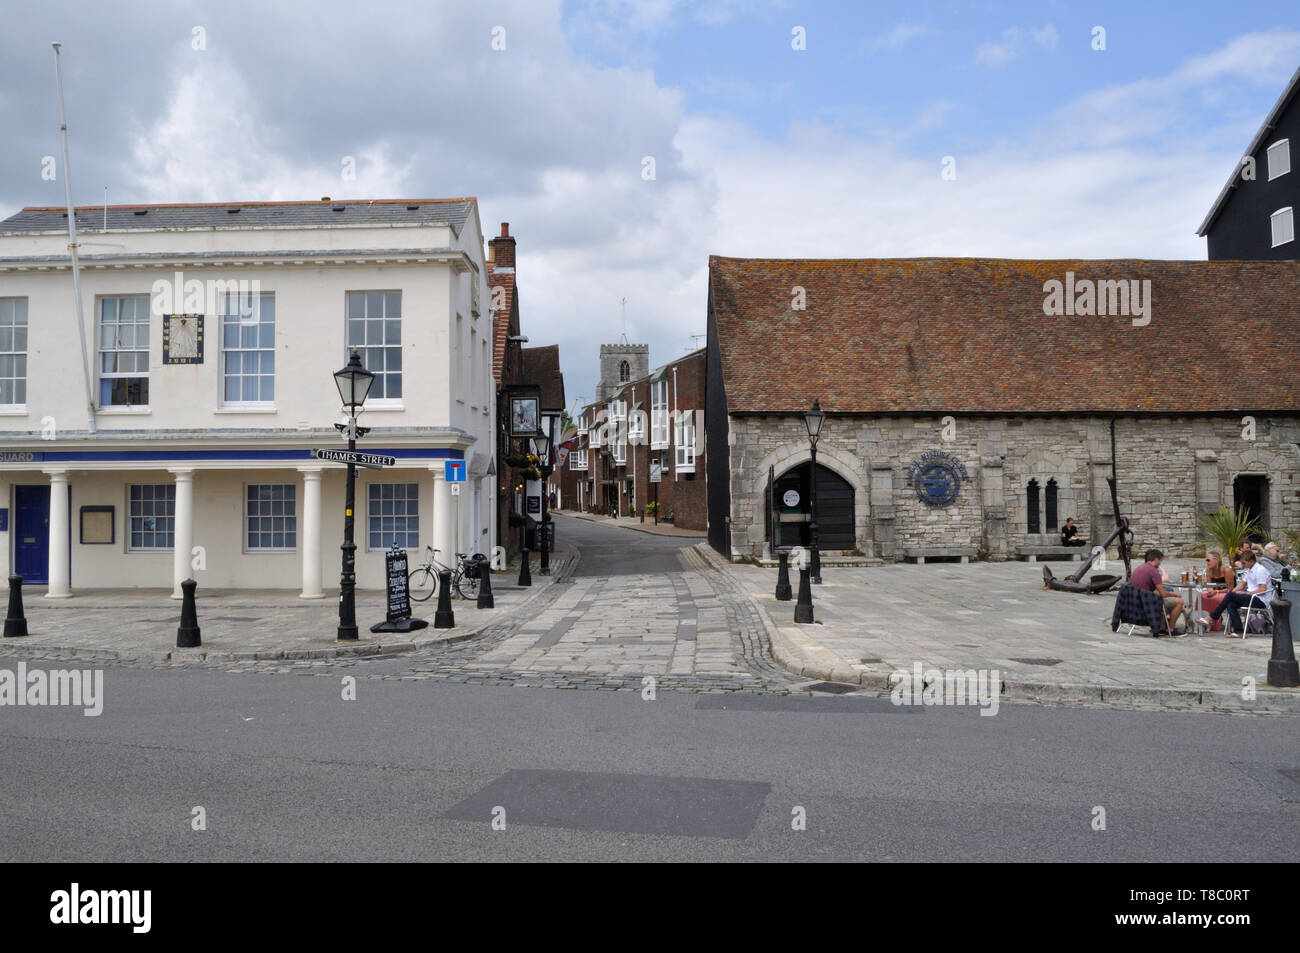 View along Thames Street, Poole, from the quay, with the tower of St James's church in the background. - Stock Image